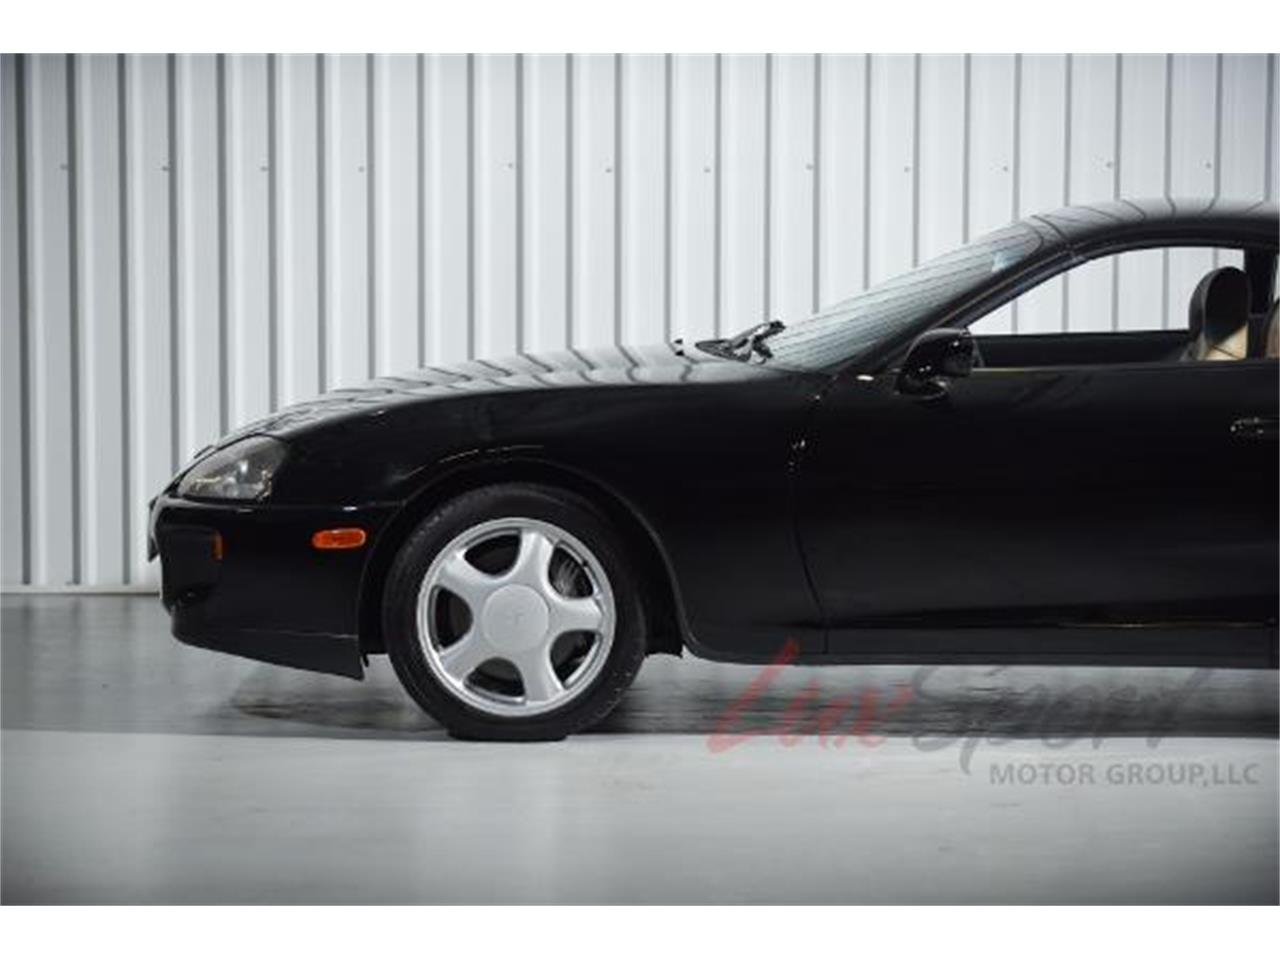 Large Picture of 1994 Supra located in New Hyde Park New York Auction Vehicle Offered by LuxSport Motor Group, LLC - LRMX